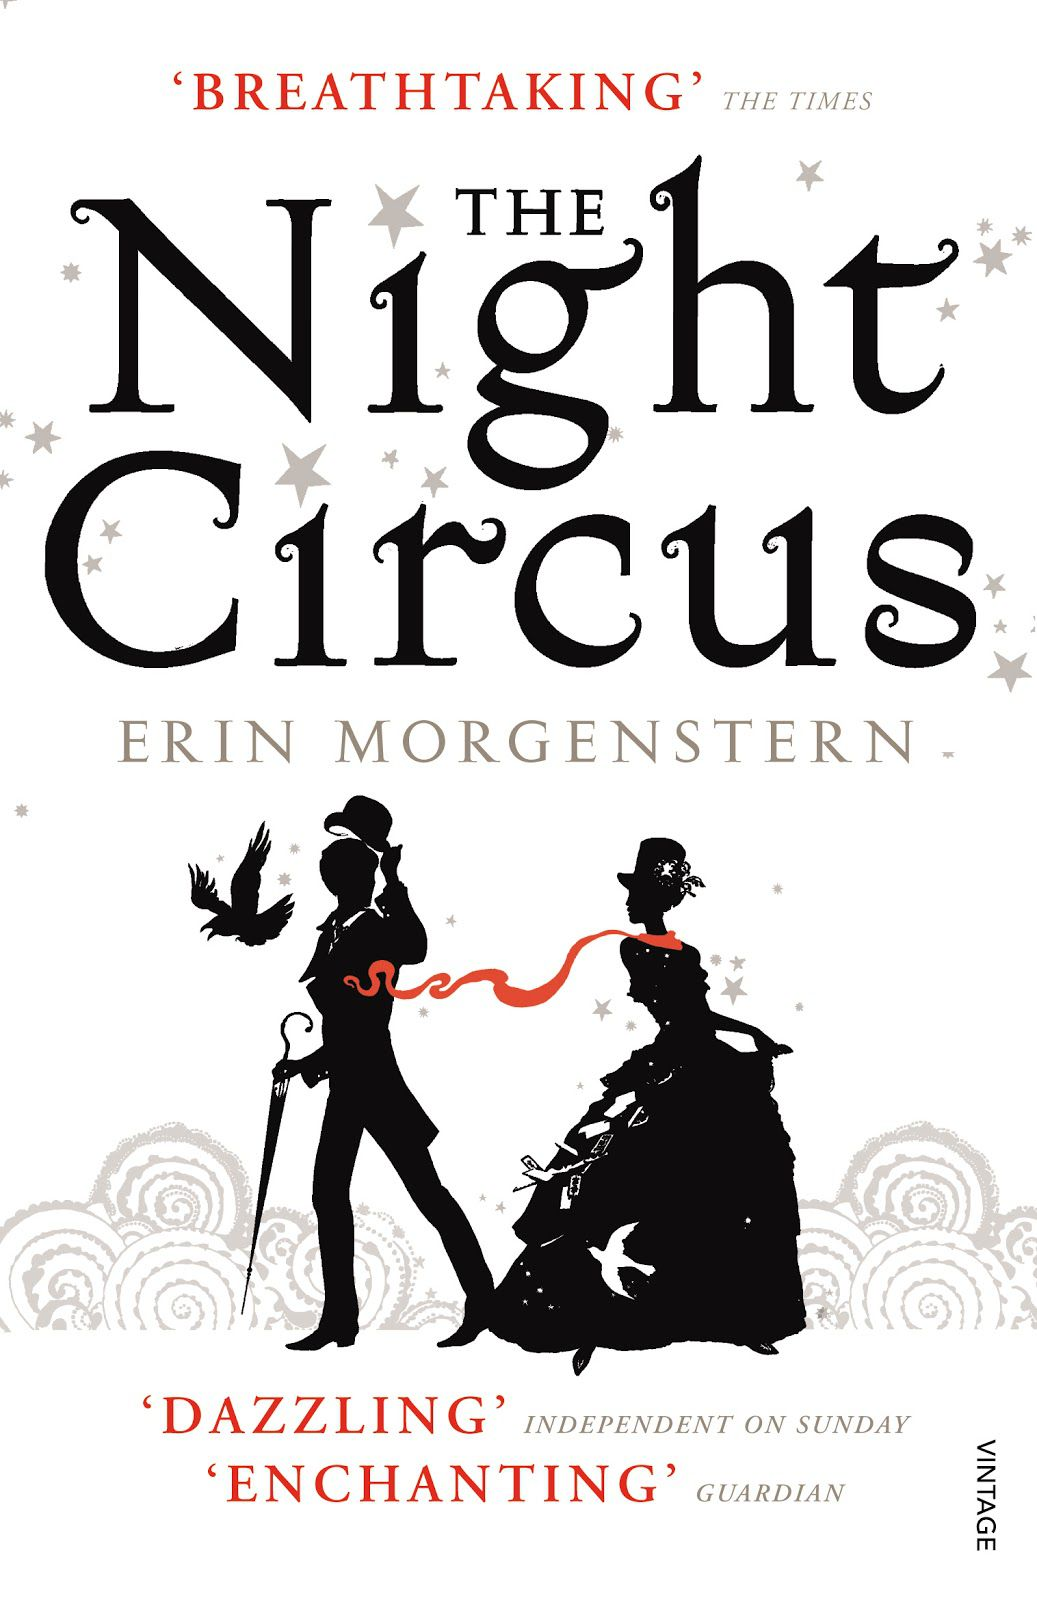 Discuss 'The Night Circus' by Erin Morgenstern